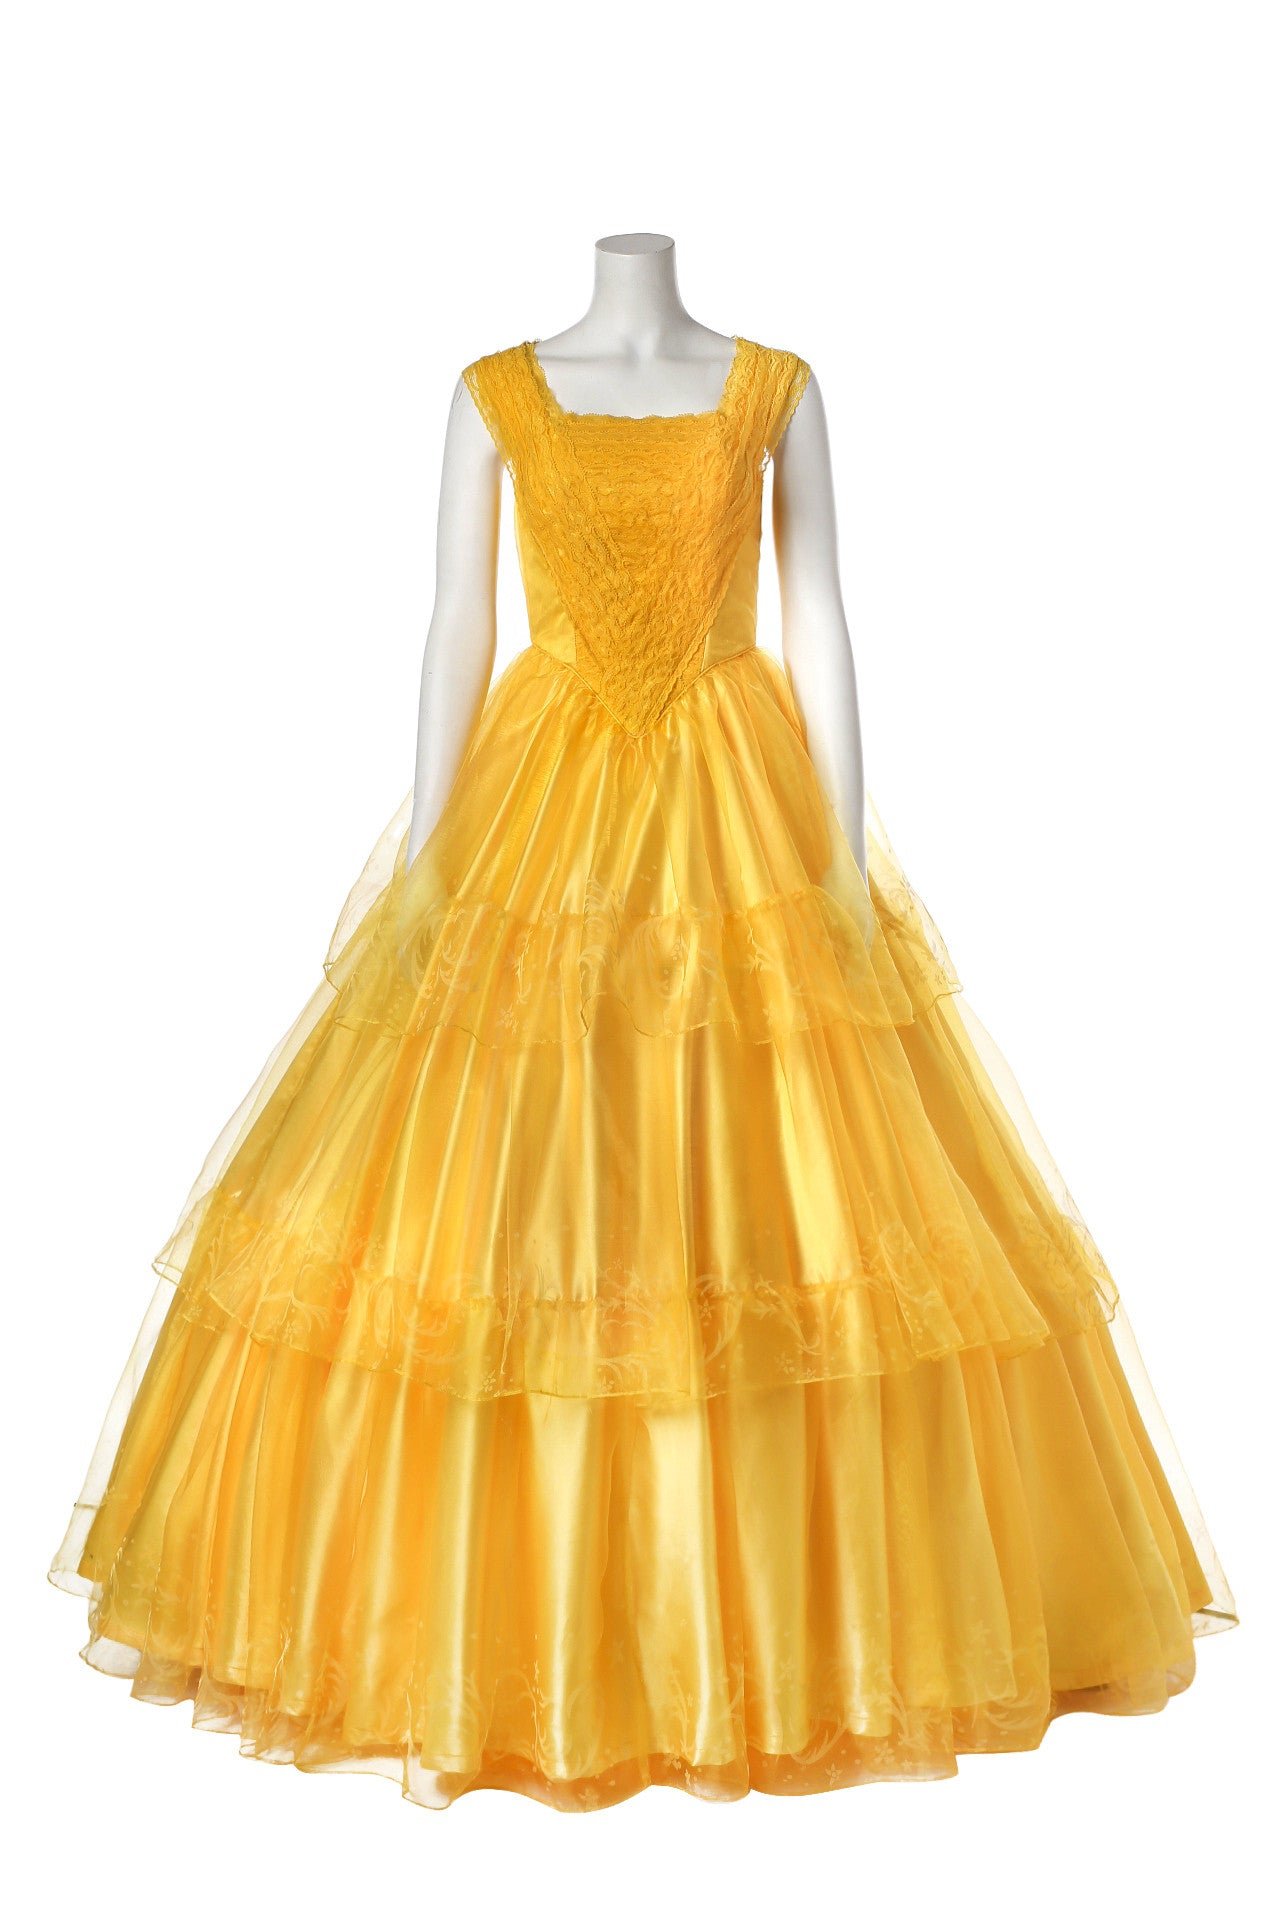 beauty and the beast belle cosplay costume for halloween party yellow princess party dress